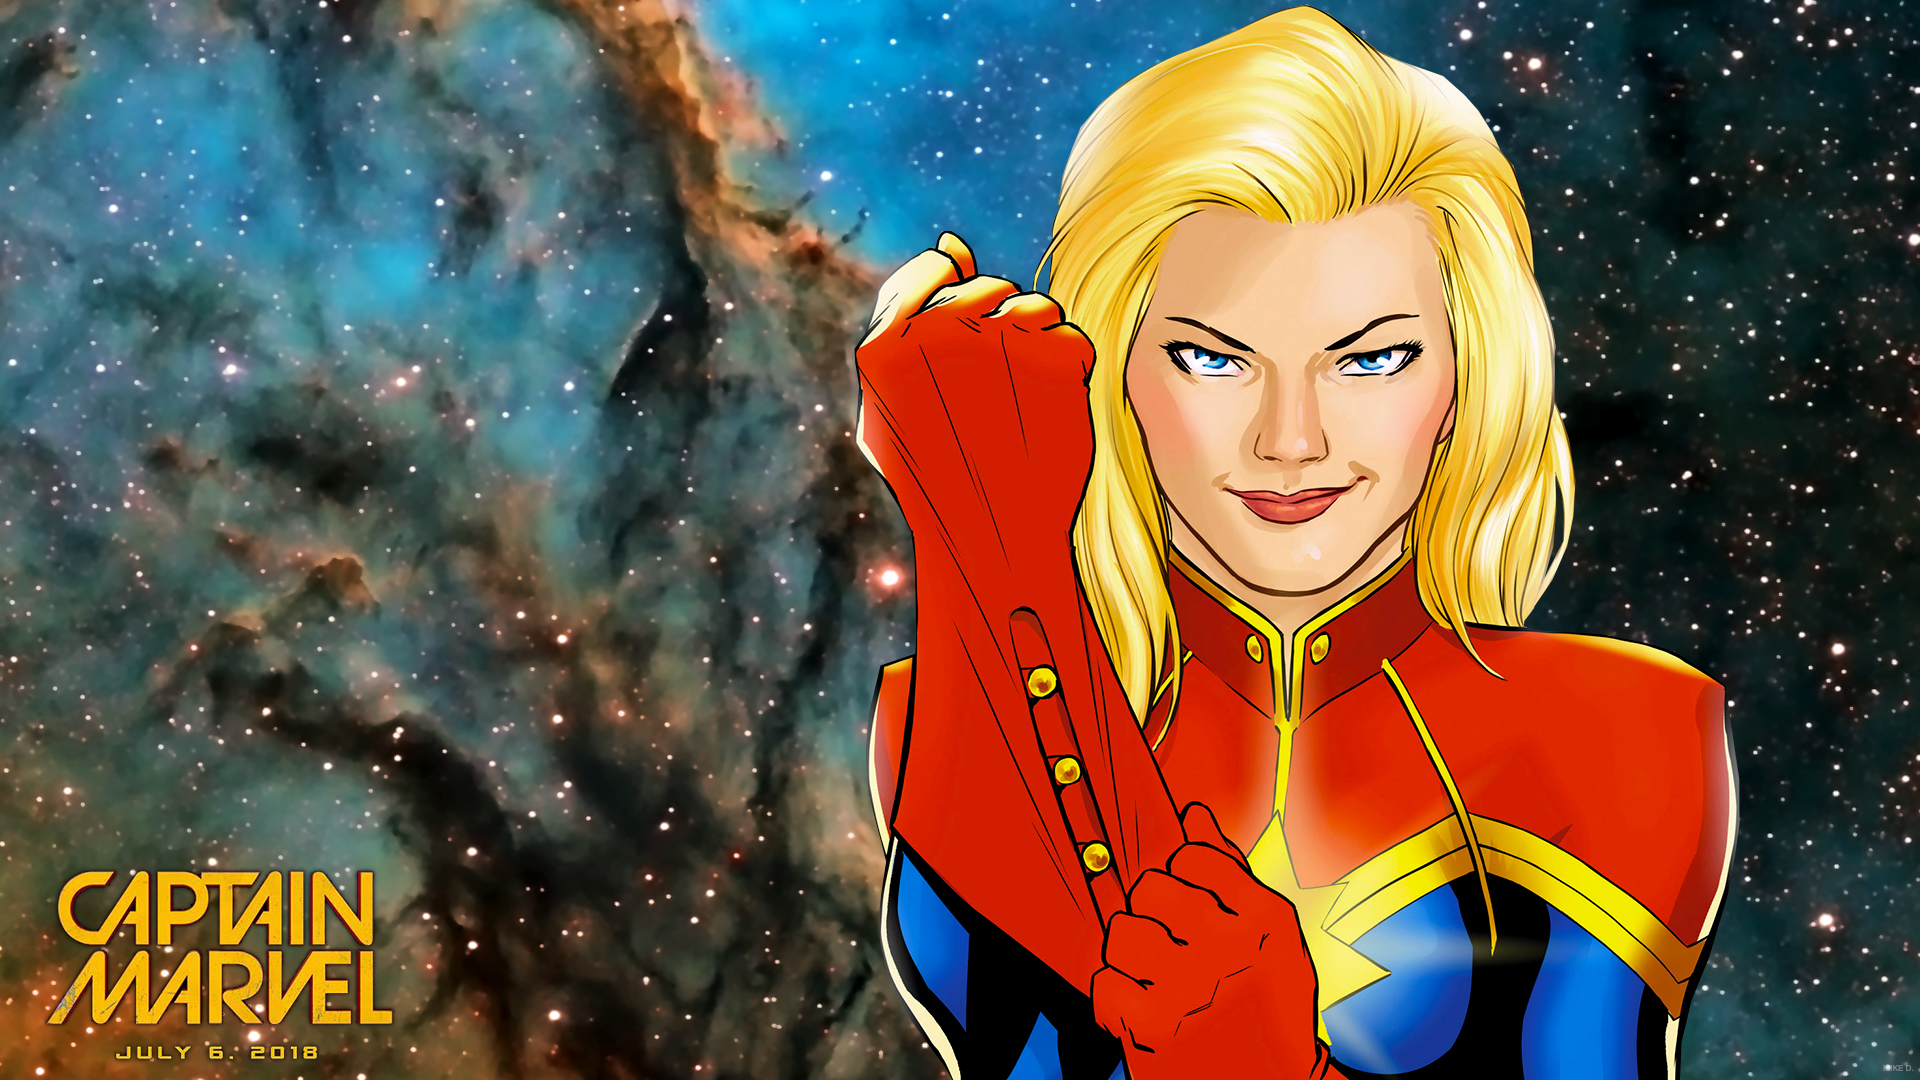 HD Wallpapers 1080p with Superheroes - Captain Marvel ...